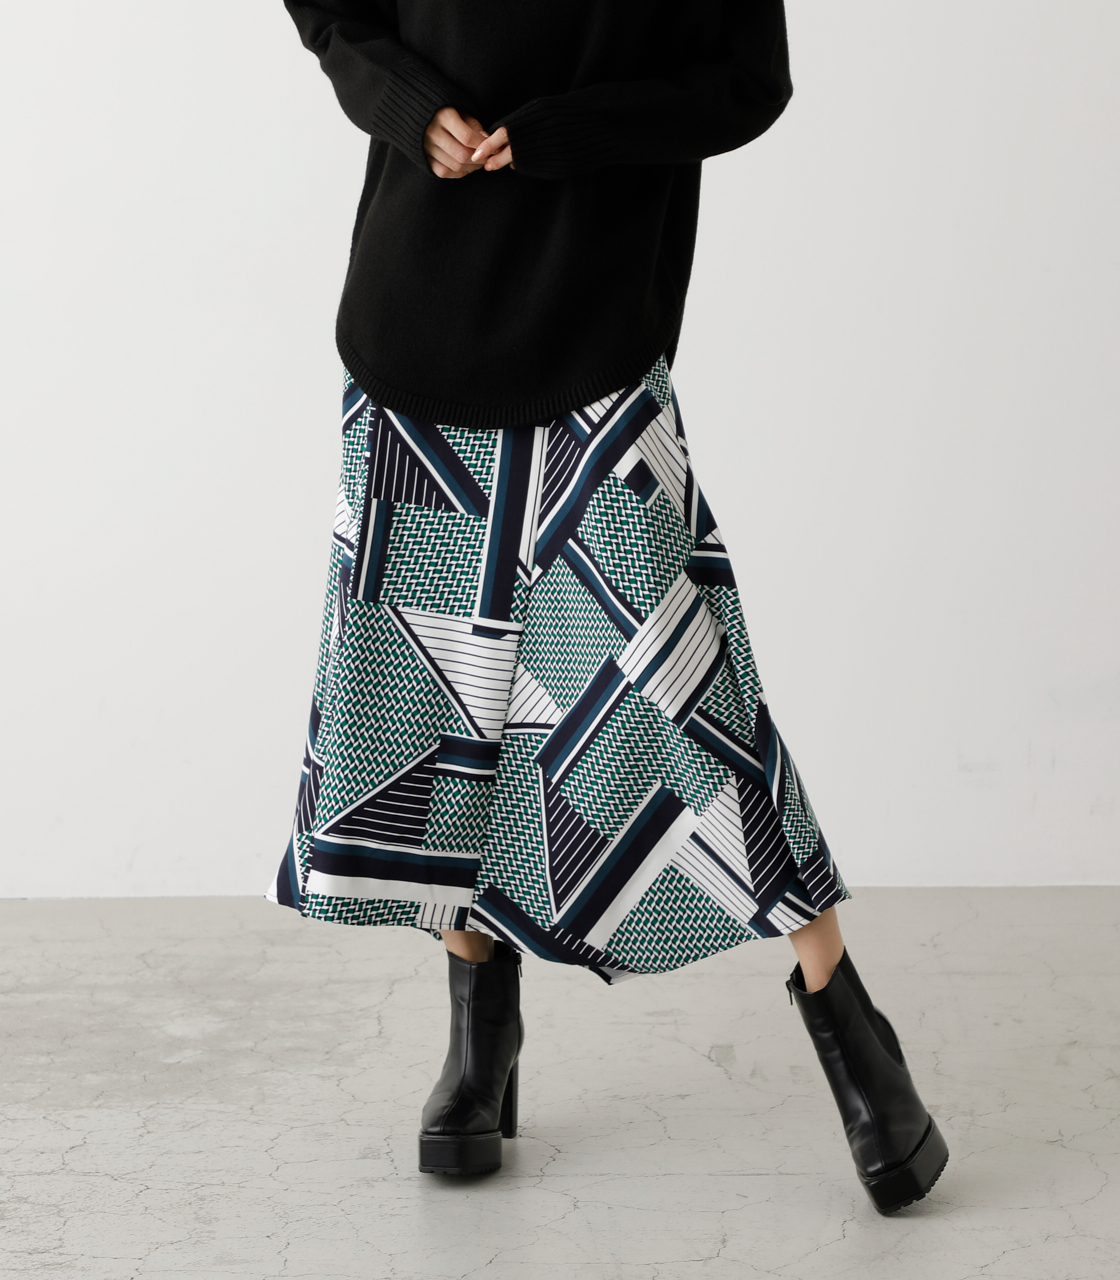 SCARF PATTERN SKIRT/スカーフパターンスカート 詳細画像 柄GRN 1